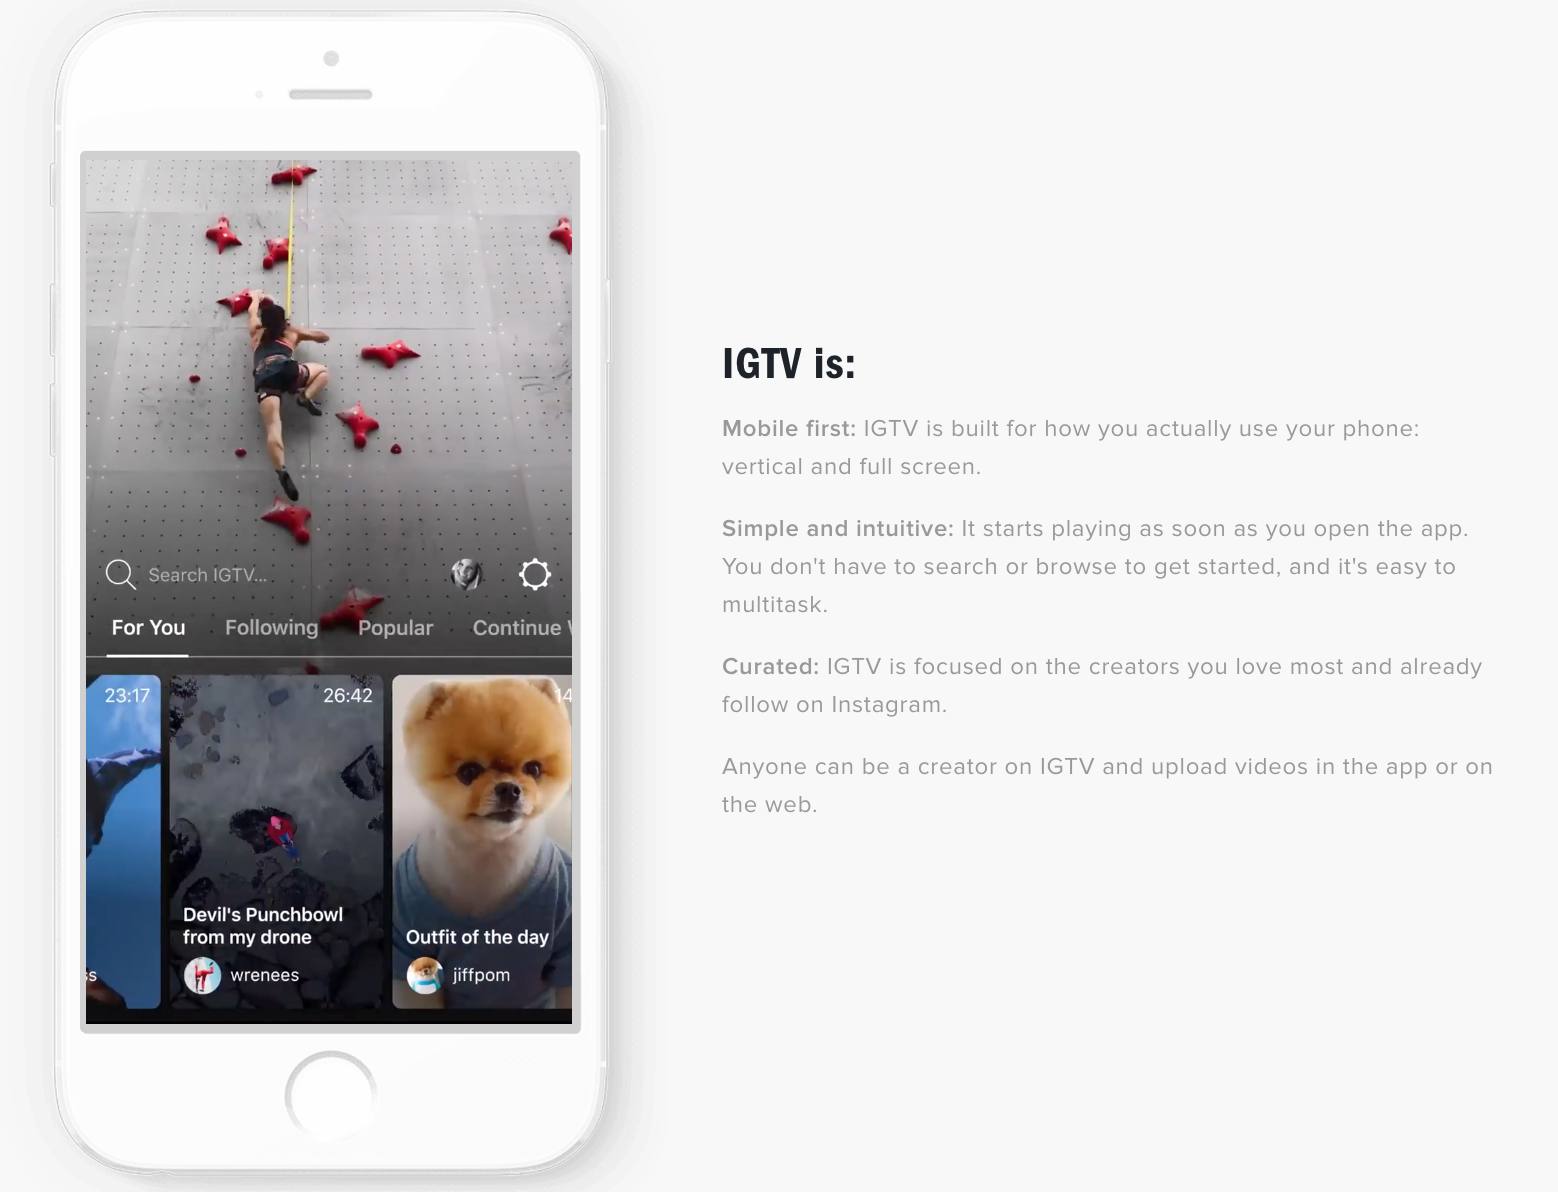 Instagram debuts IGTV, set to challenge YouTube's domination